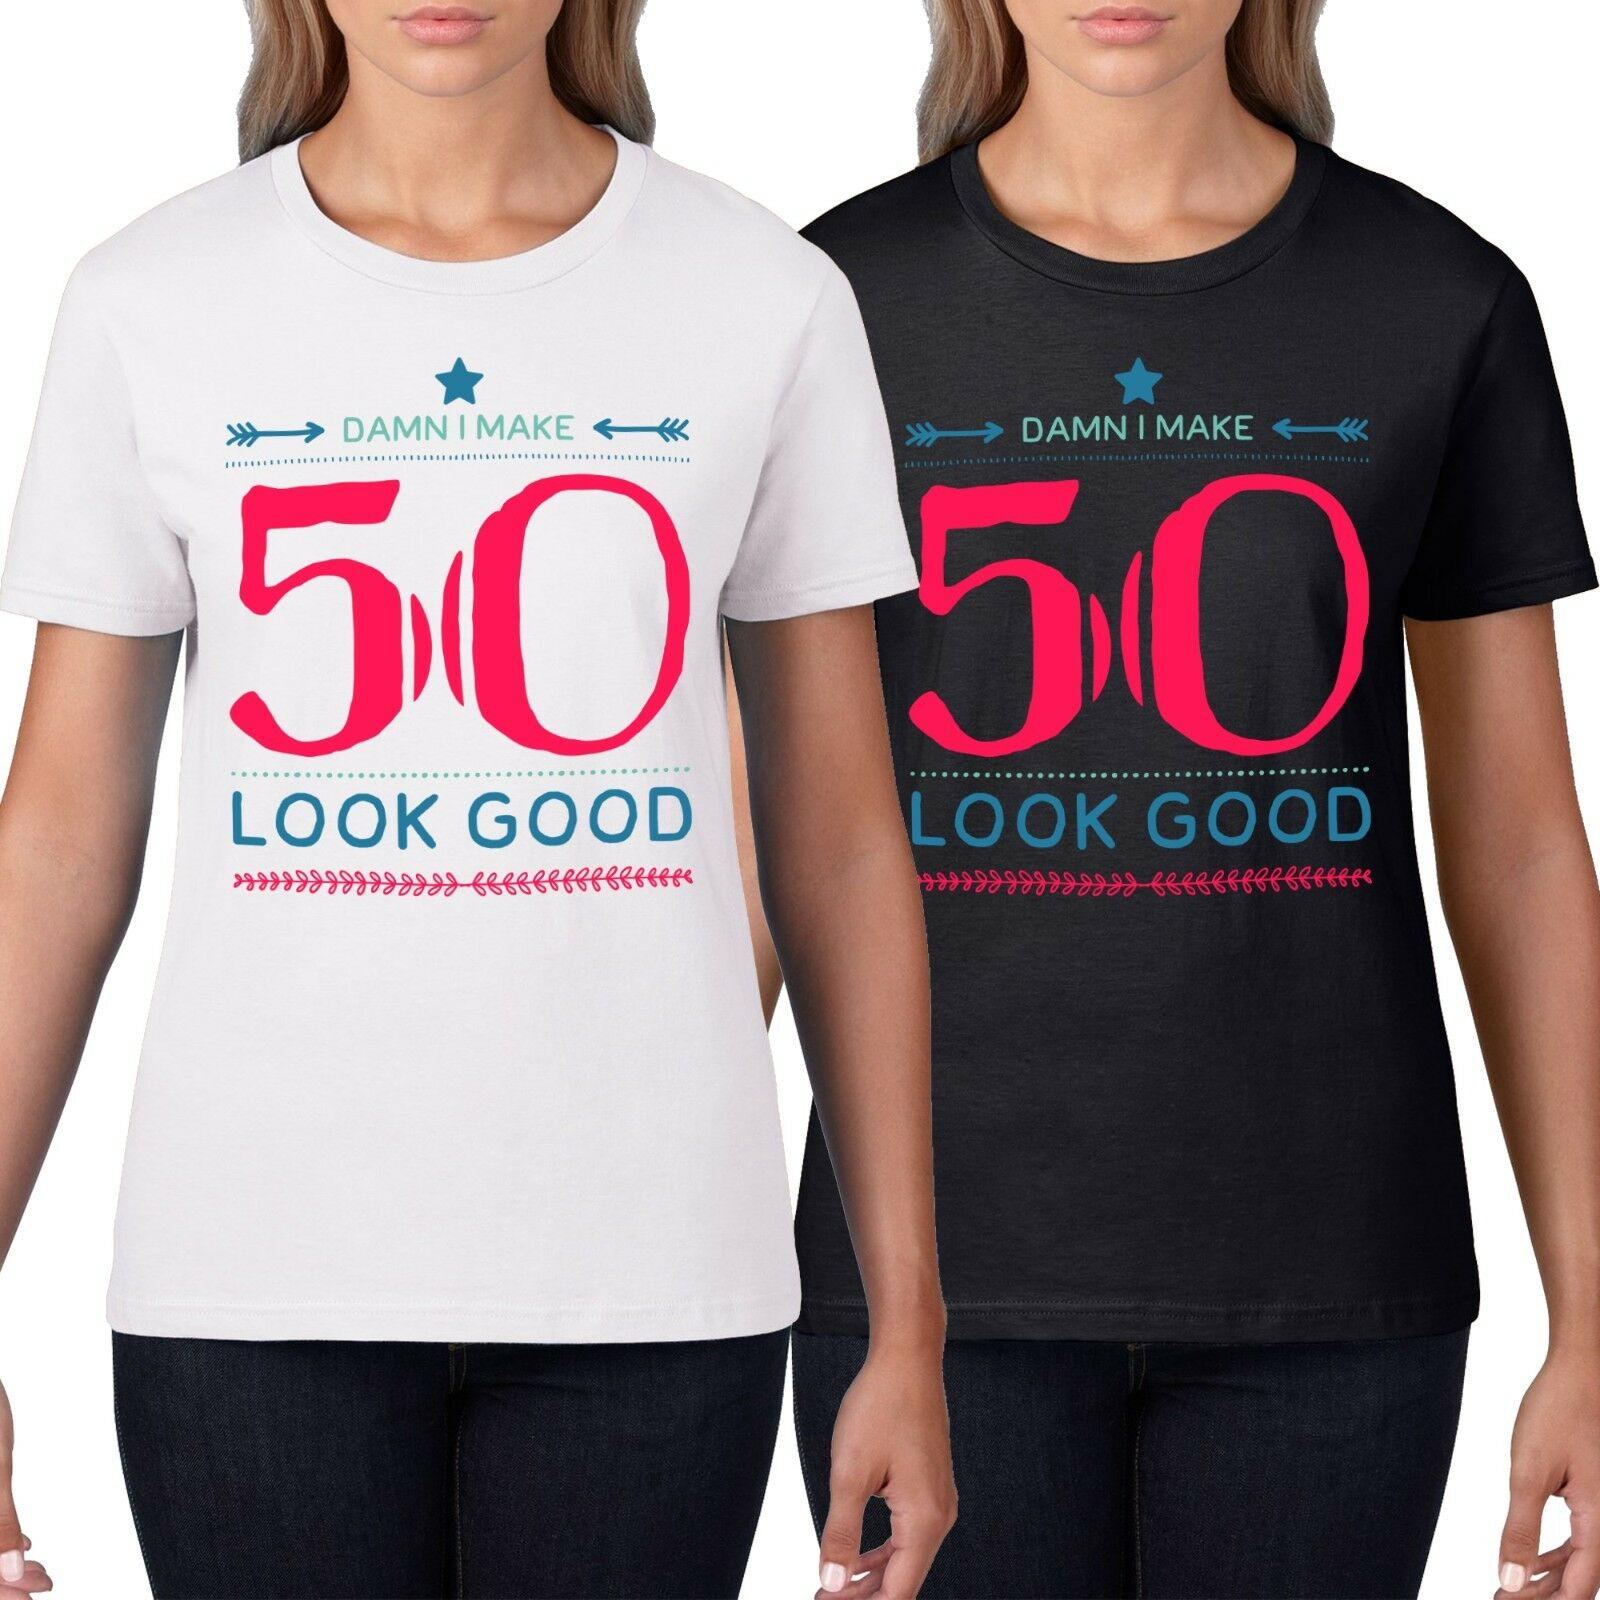 Details About Damn Make 50 Look Good Funny Womens T Shirt Fifty 50th Birthday TShirt Gift 831